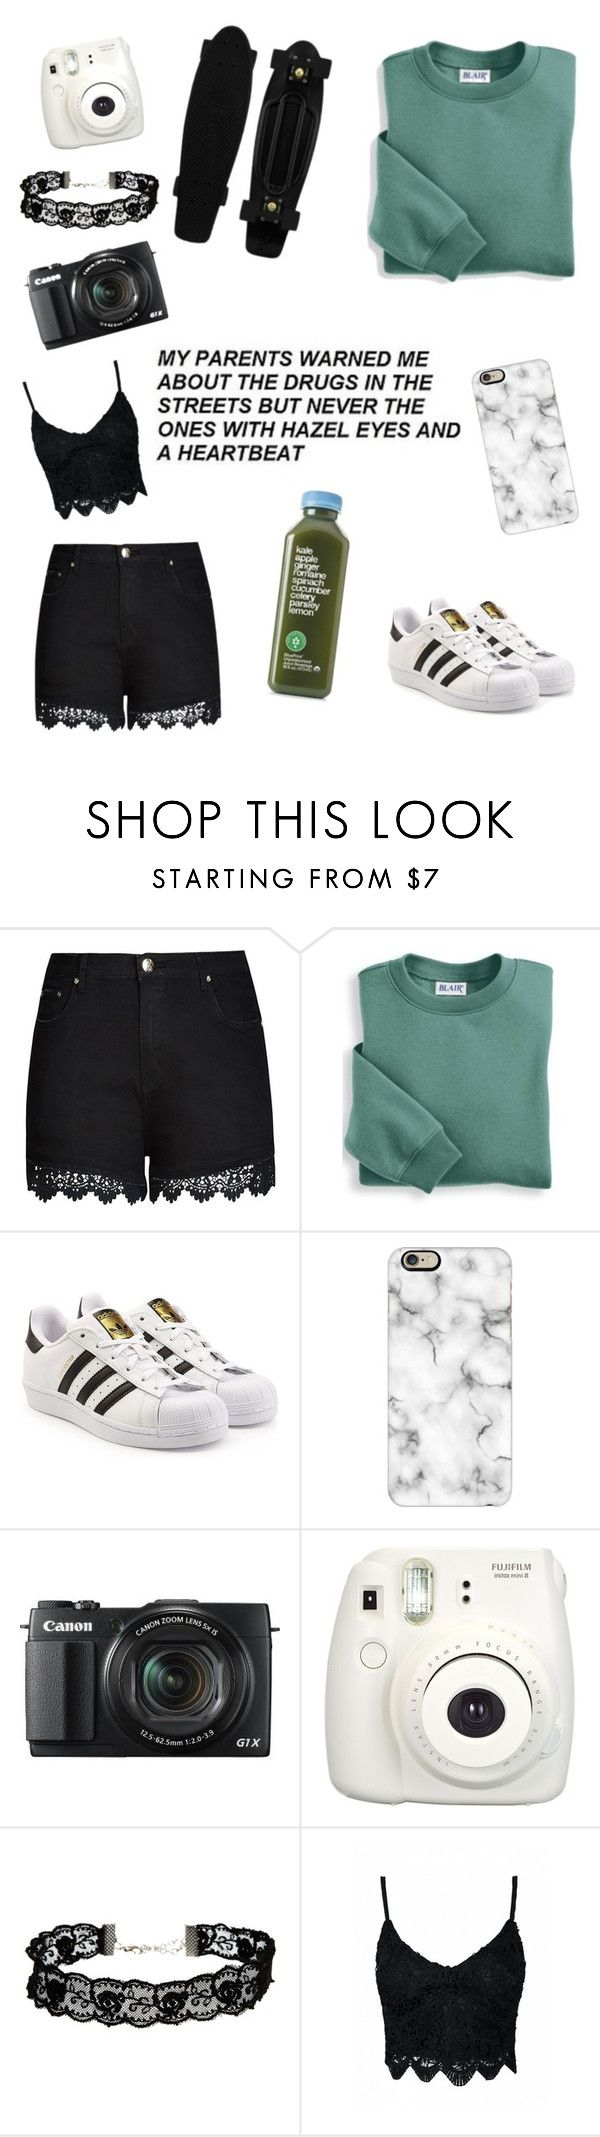 """""""Hazel eyes and a heart beat💖"""" by kylieirwin11 ❤ liked on Polyvore featuring City Chic, Blair, adidas Originals, Casetify, G1, Fujifilm, ASOS and plus size clothing"""